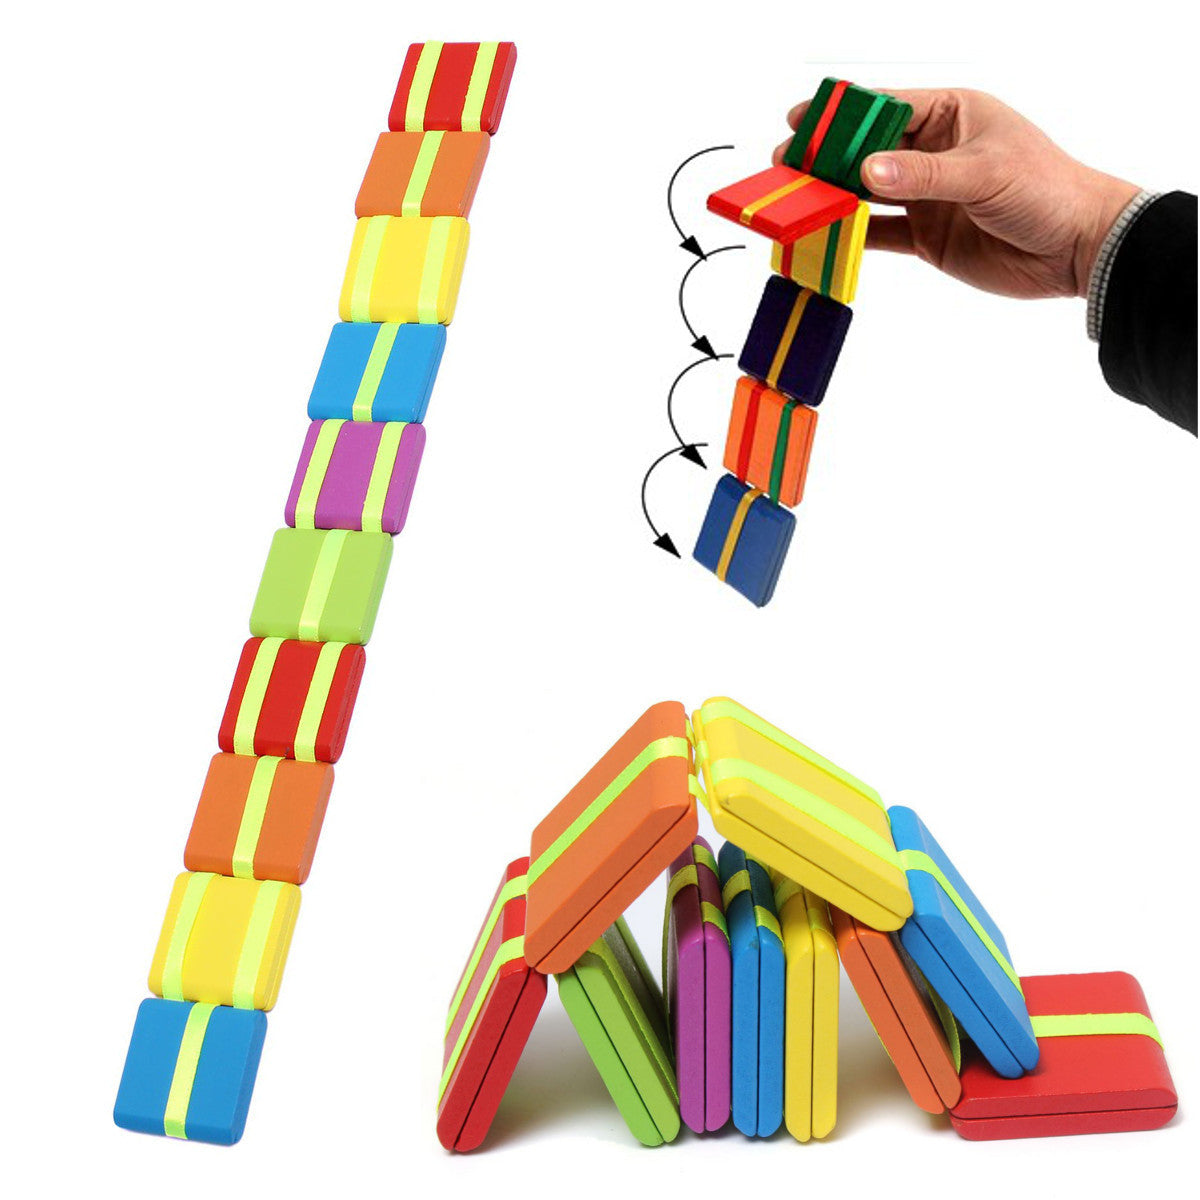 20PCS Multicolor Wooden Magical Game Children Educationanl Toy Russian Classic Puzzle Toys